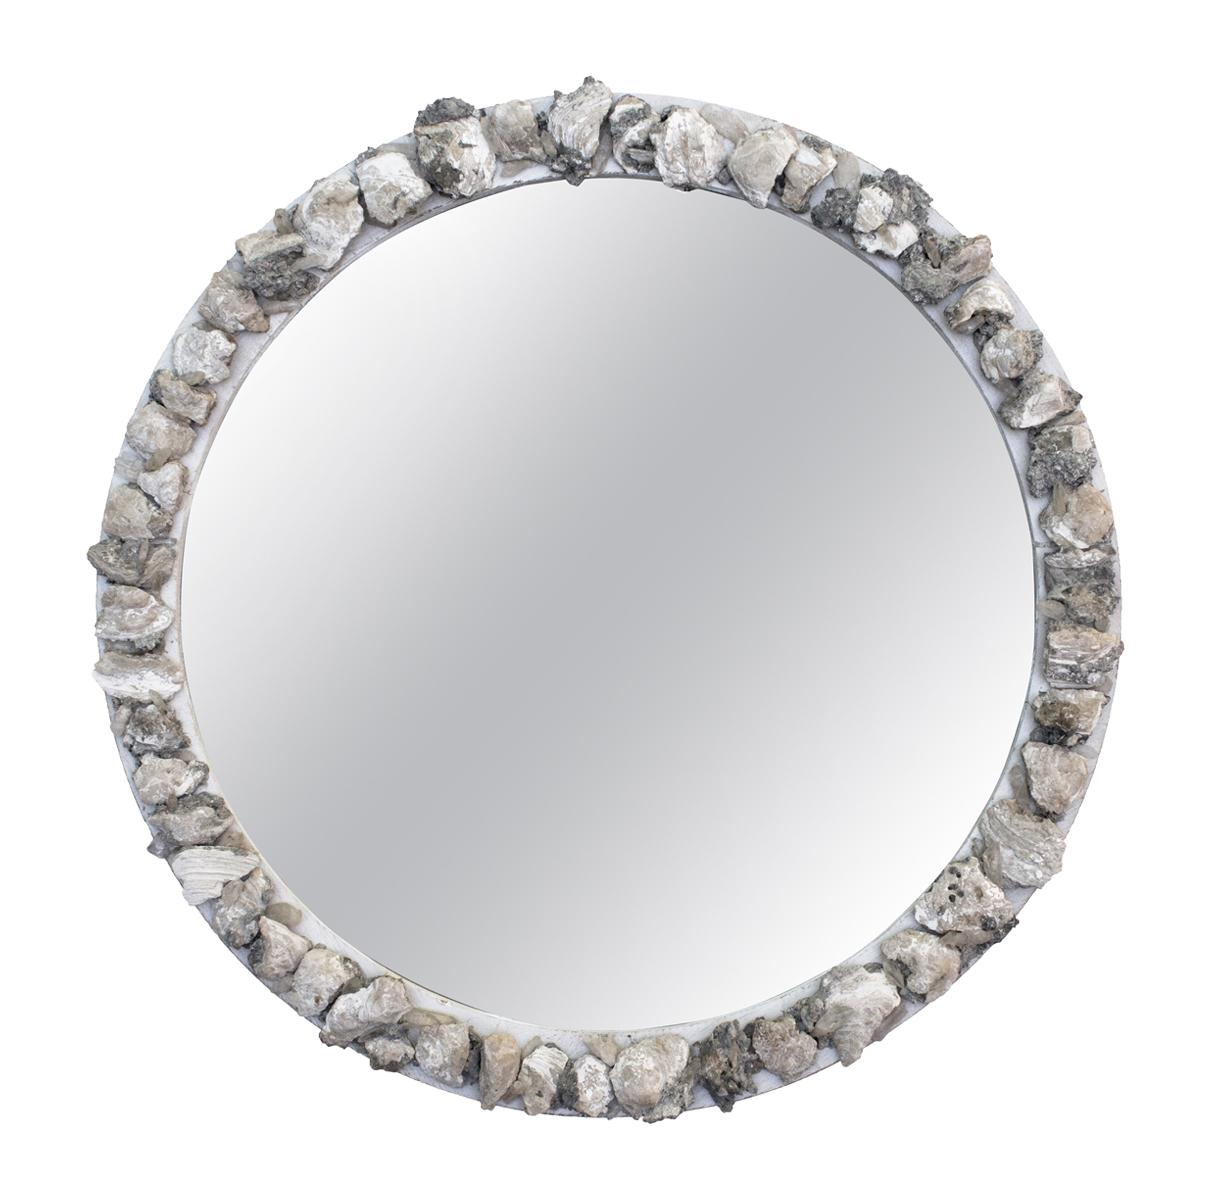 Round Wood Mirror with Fossil Clam Shells and Crystal Points